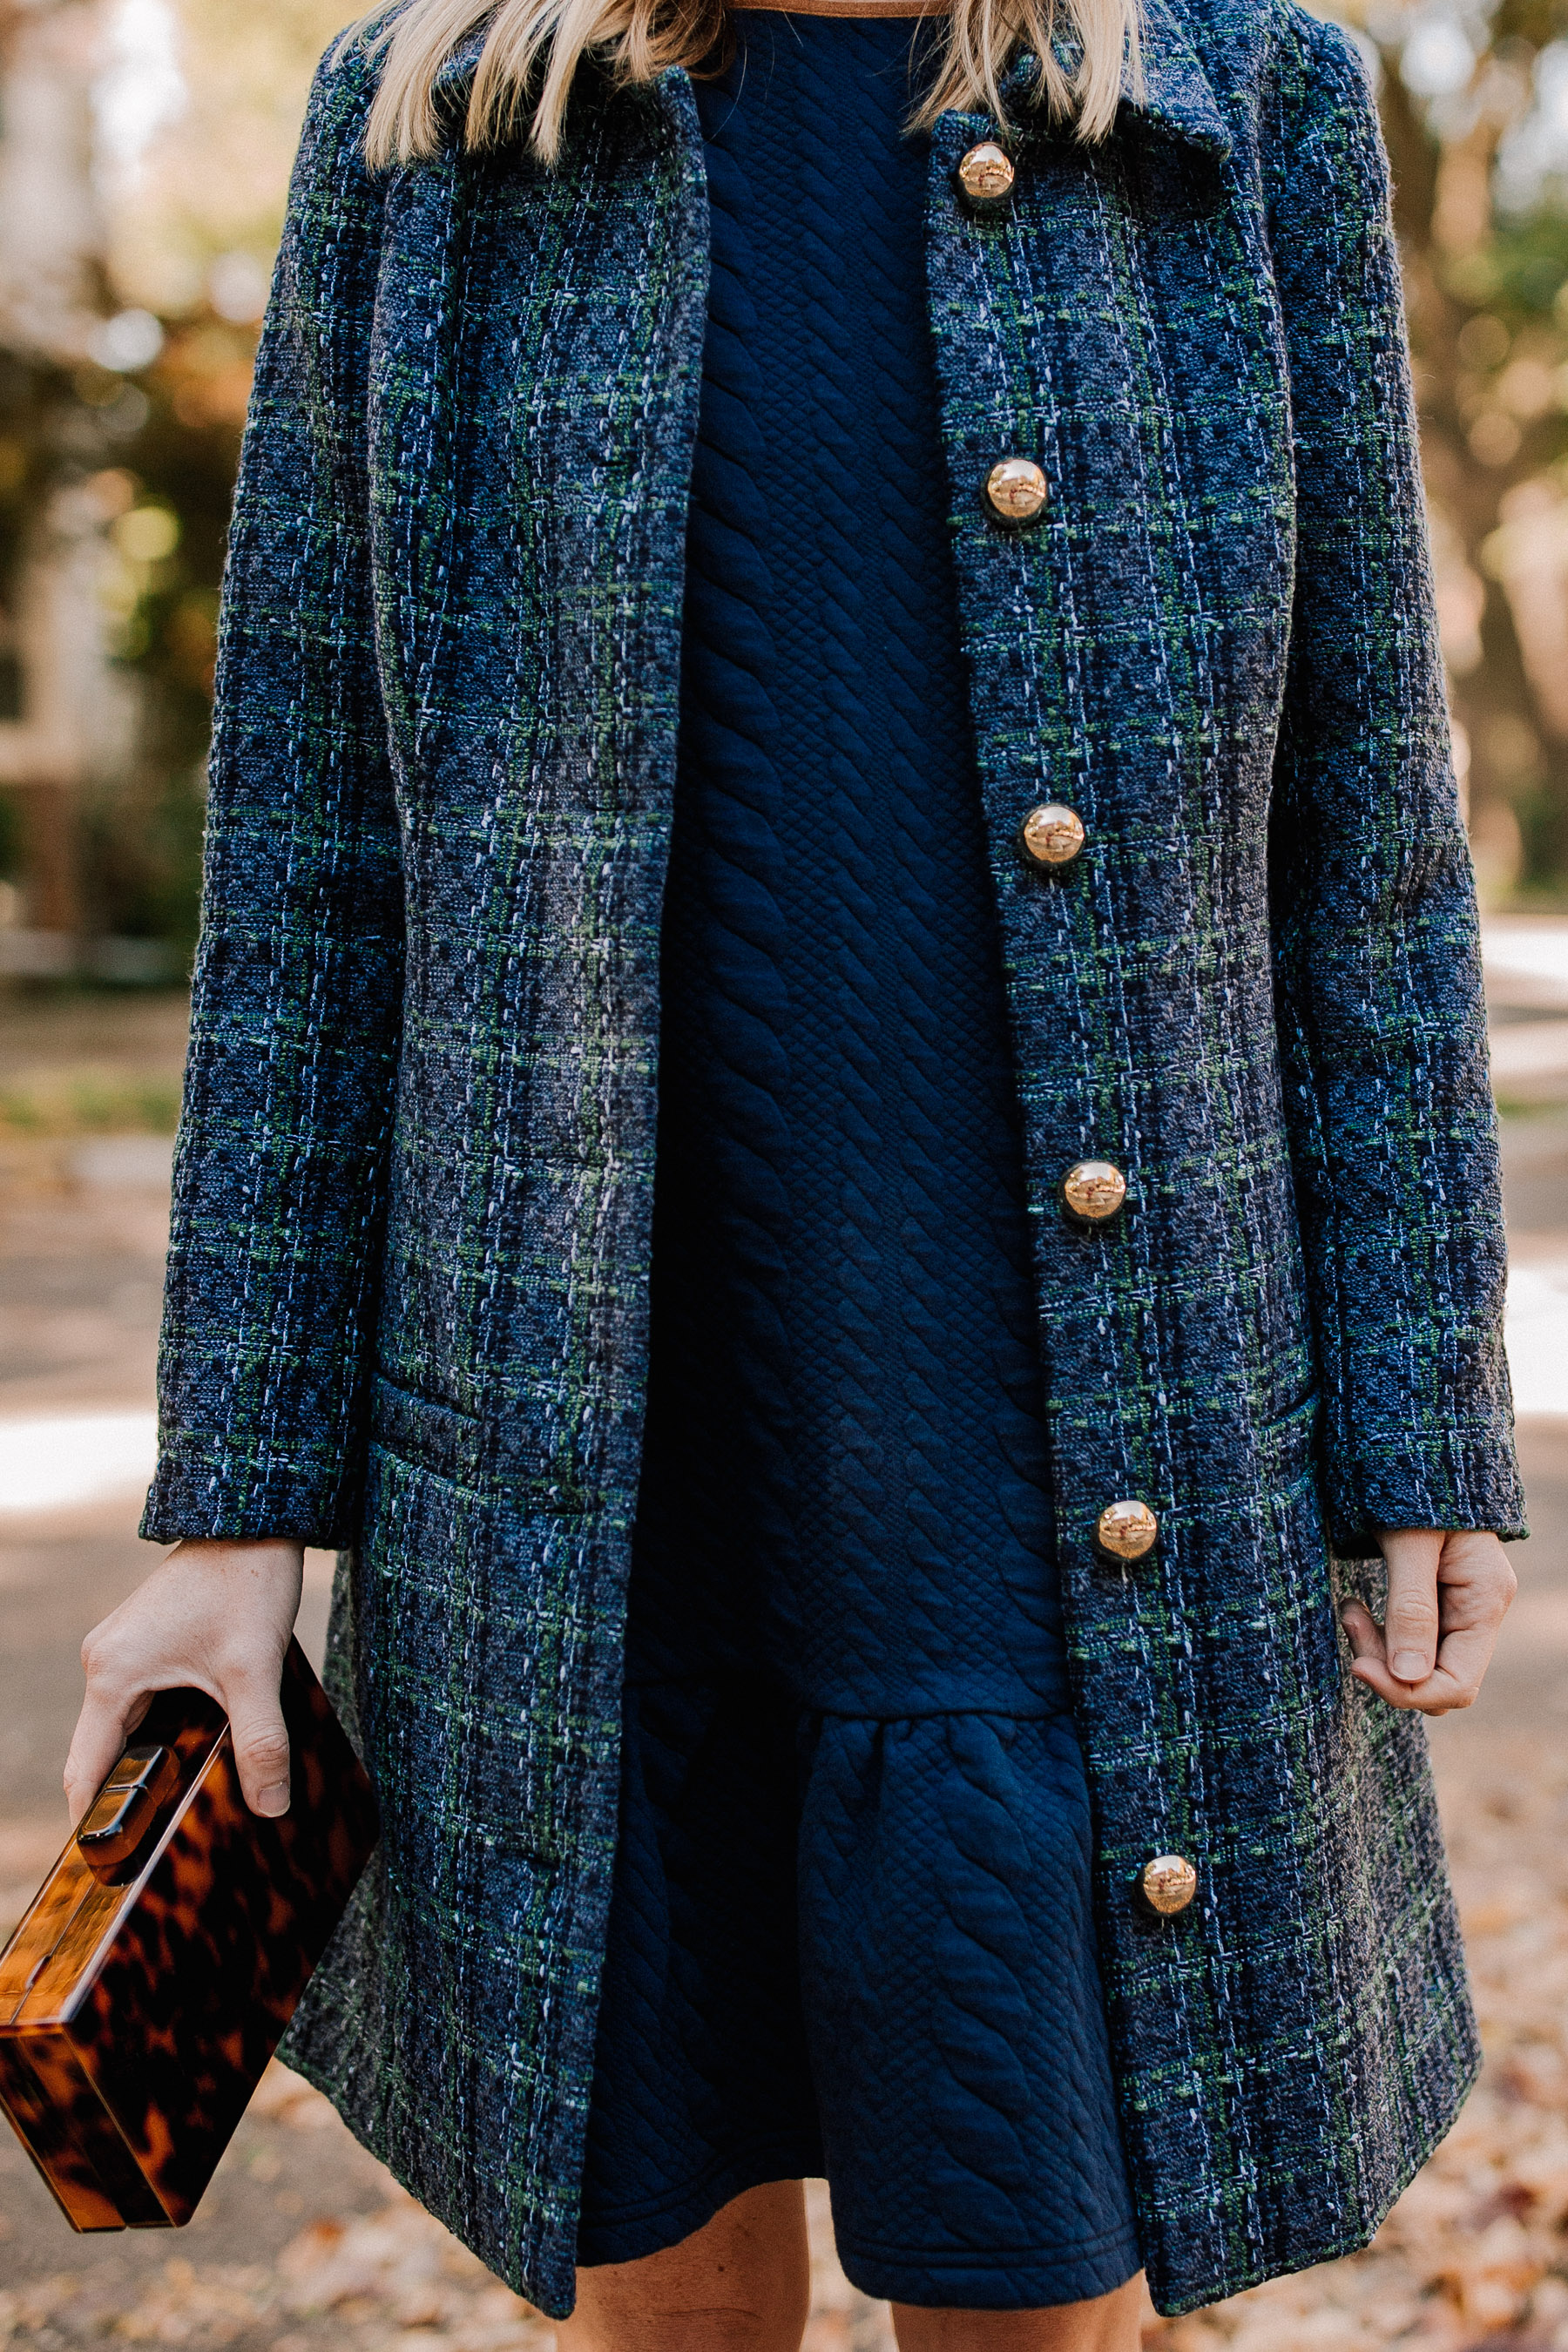 Sail to Sable Navy Tweed Coat and Navy Cable-Knit Dress